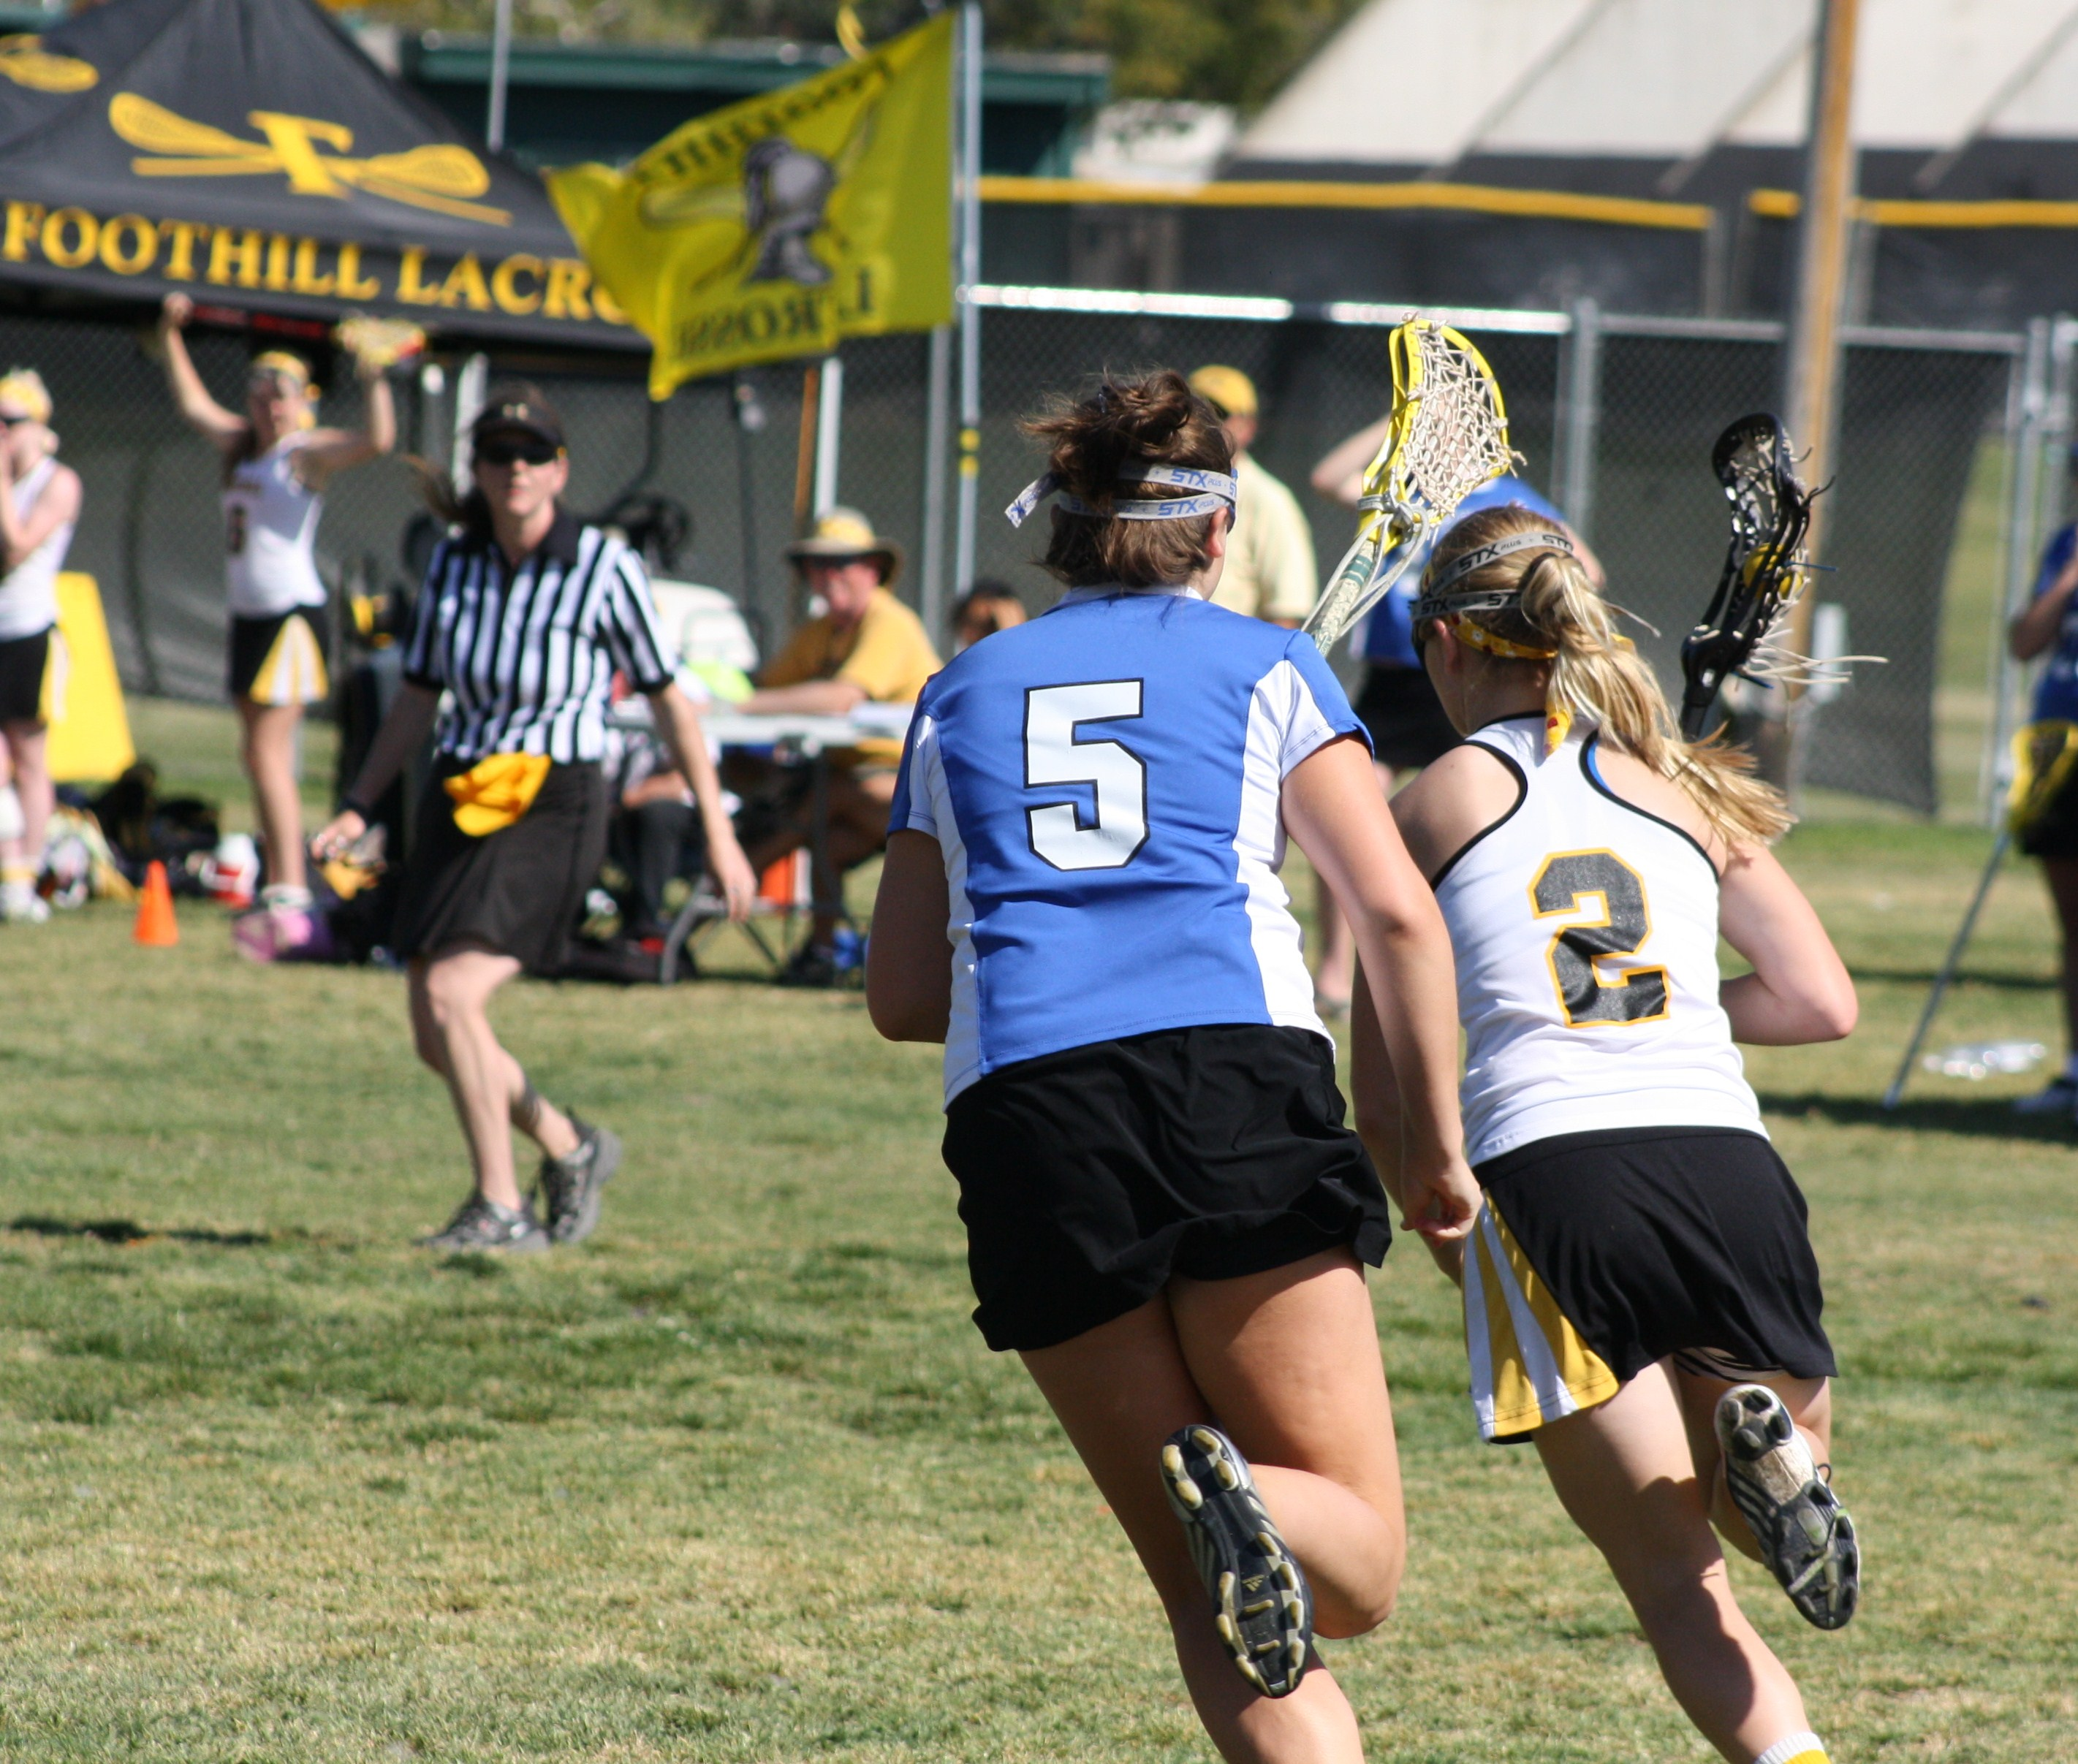 Foothill High School Varsity Girls defeated Cate School 11-10 on Saturday.